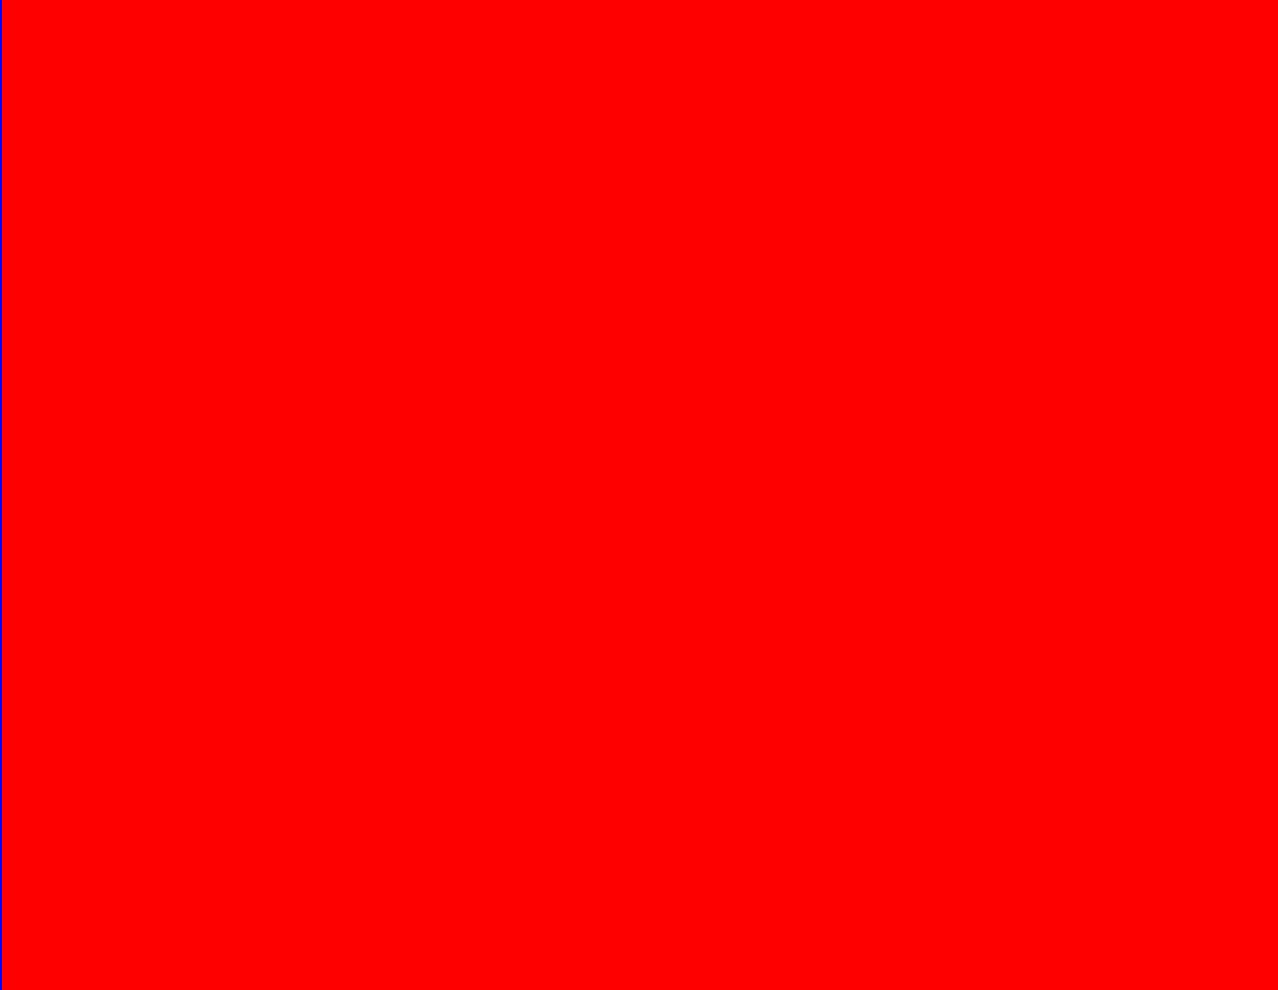 Pure Red Test Screen